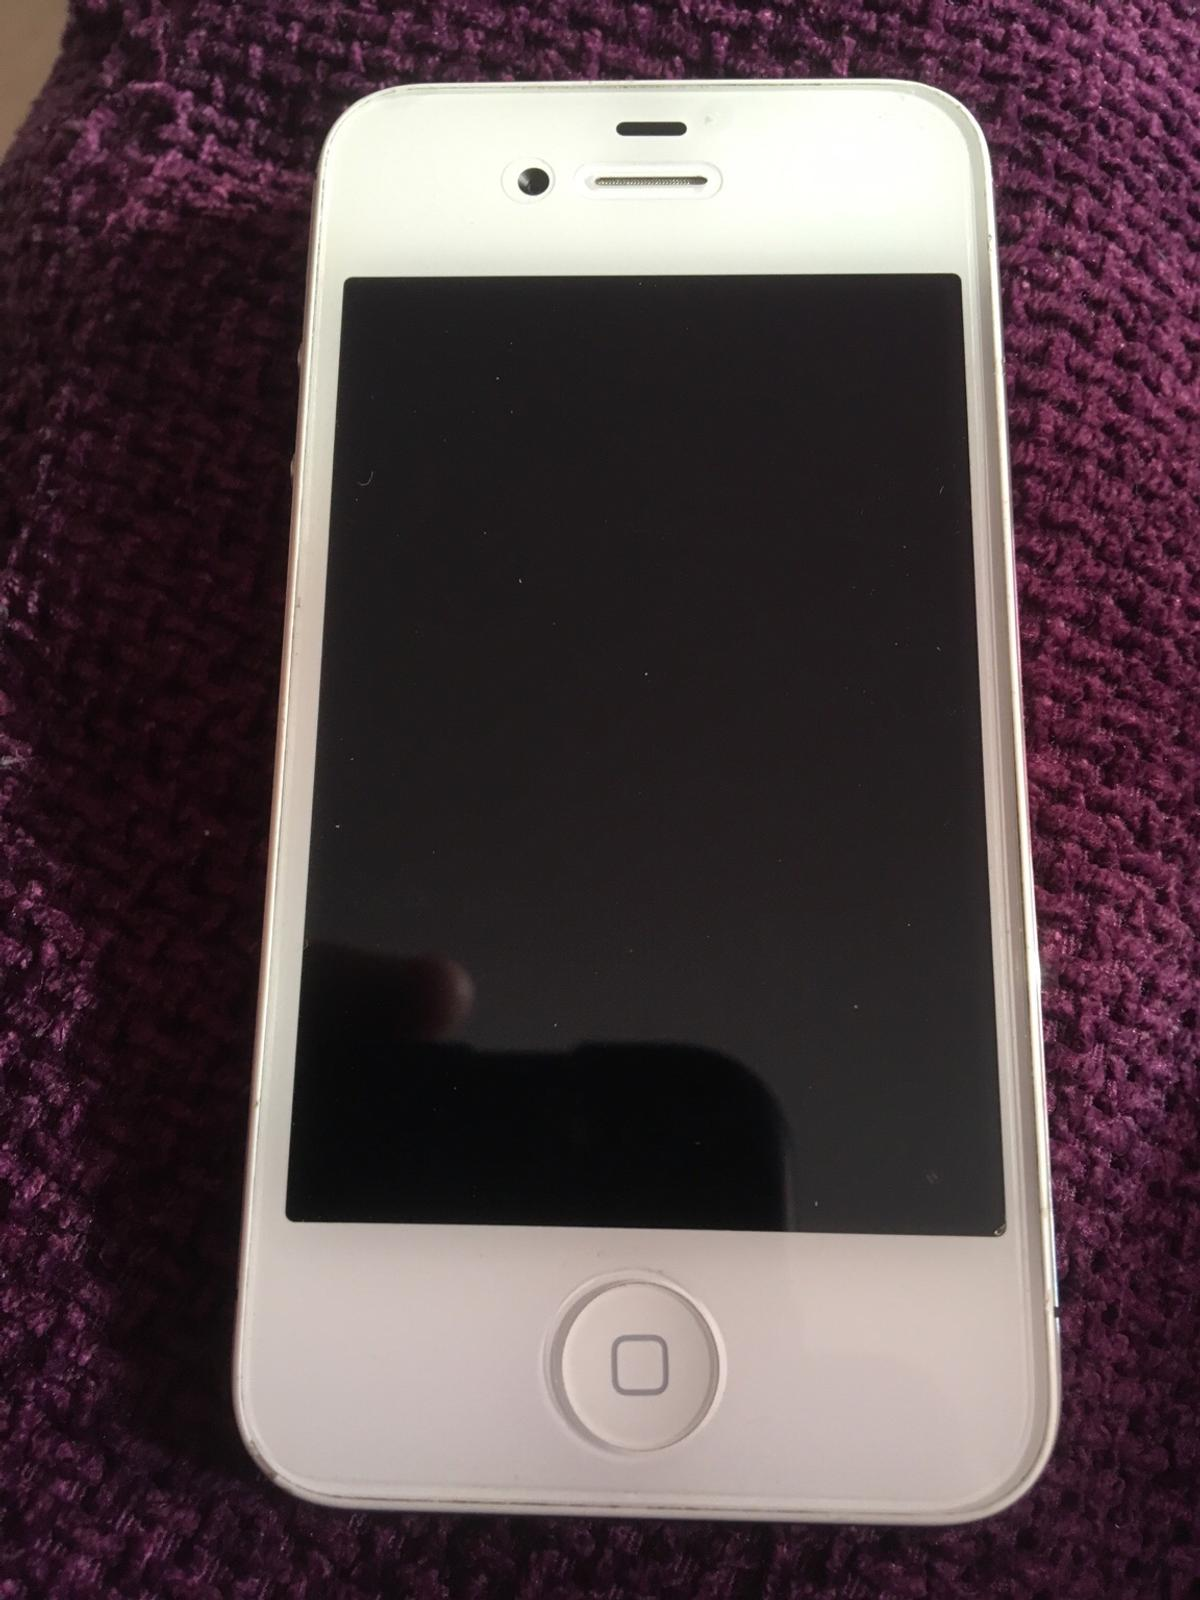 Apple iPhone 4s latest iOS 9 3 5 in B98 Redditch for £69 99